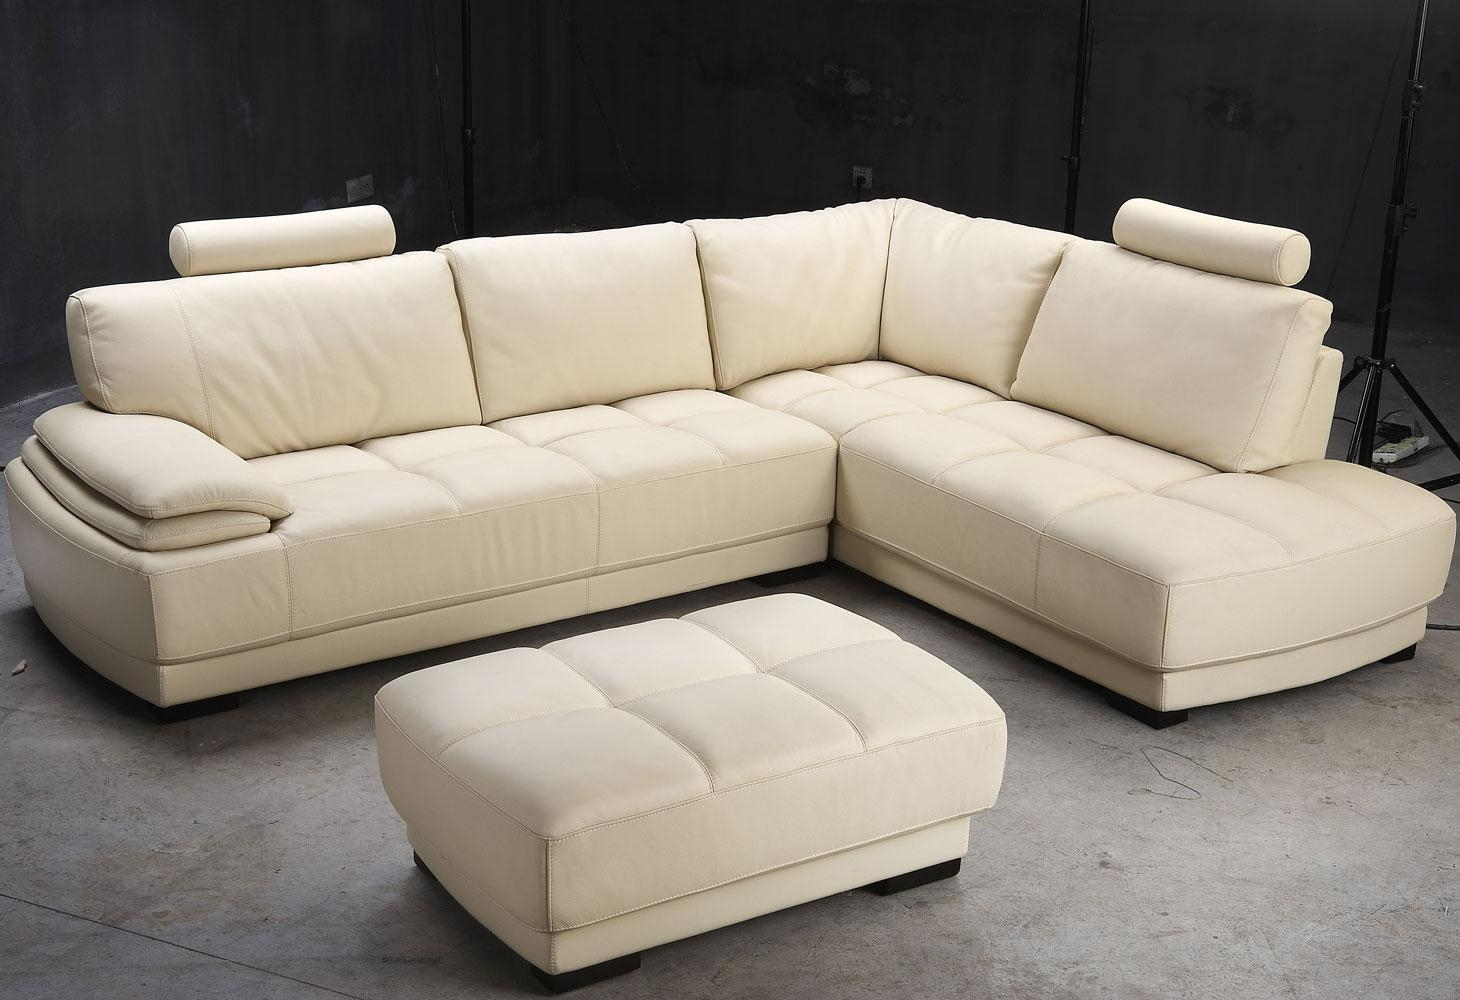 Leather Sofas Inside Beige Leather Couches (View 12 of 20)